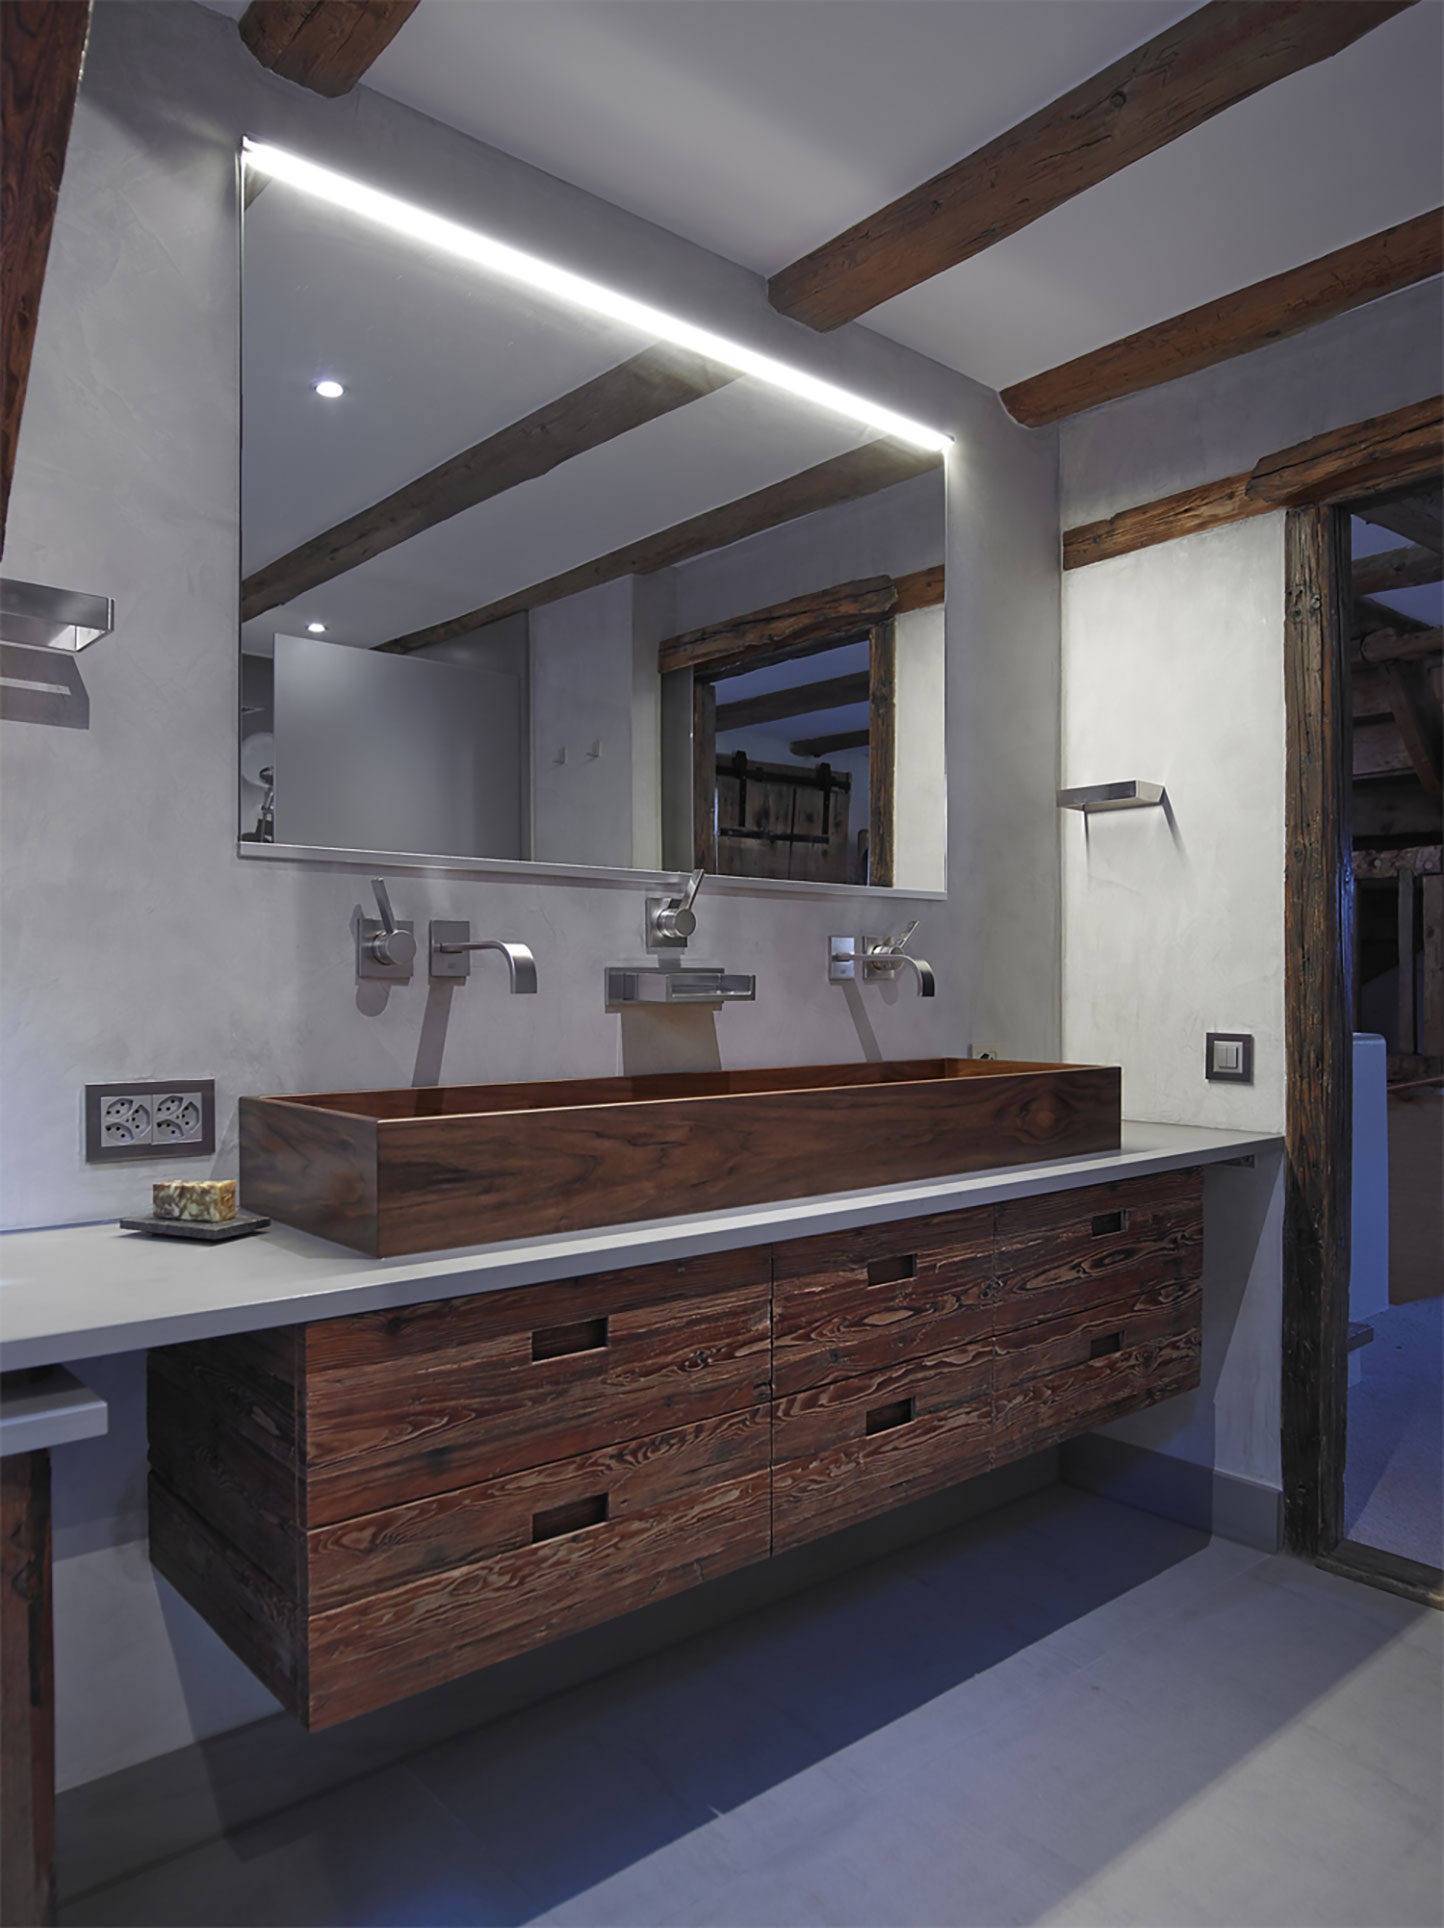 Image no. 4 of Baula bathtub and Kapai washbasin made in Walnut - Farmhouse in Switzerland